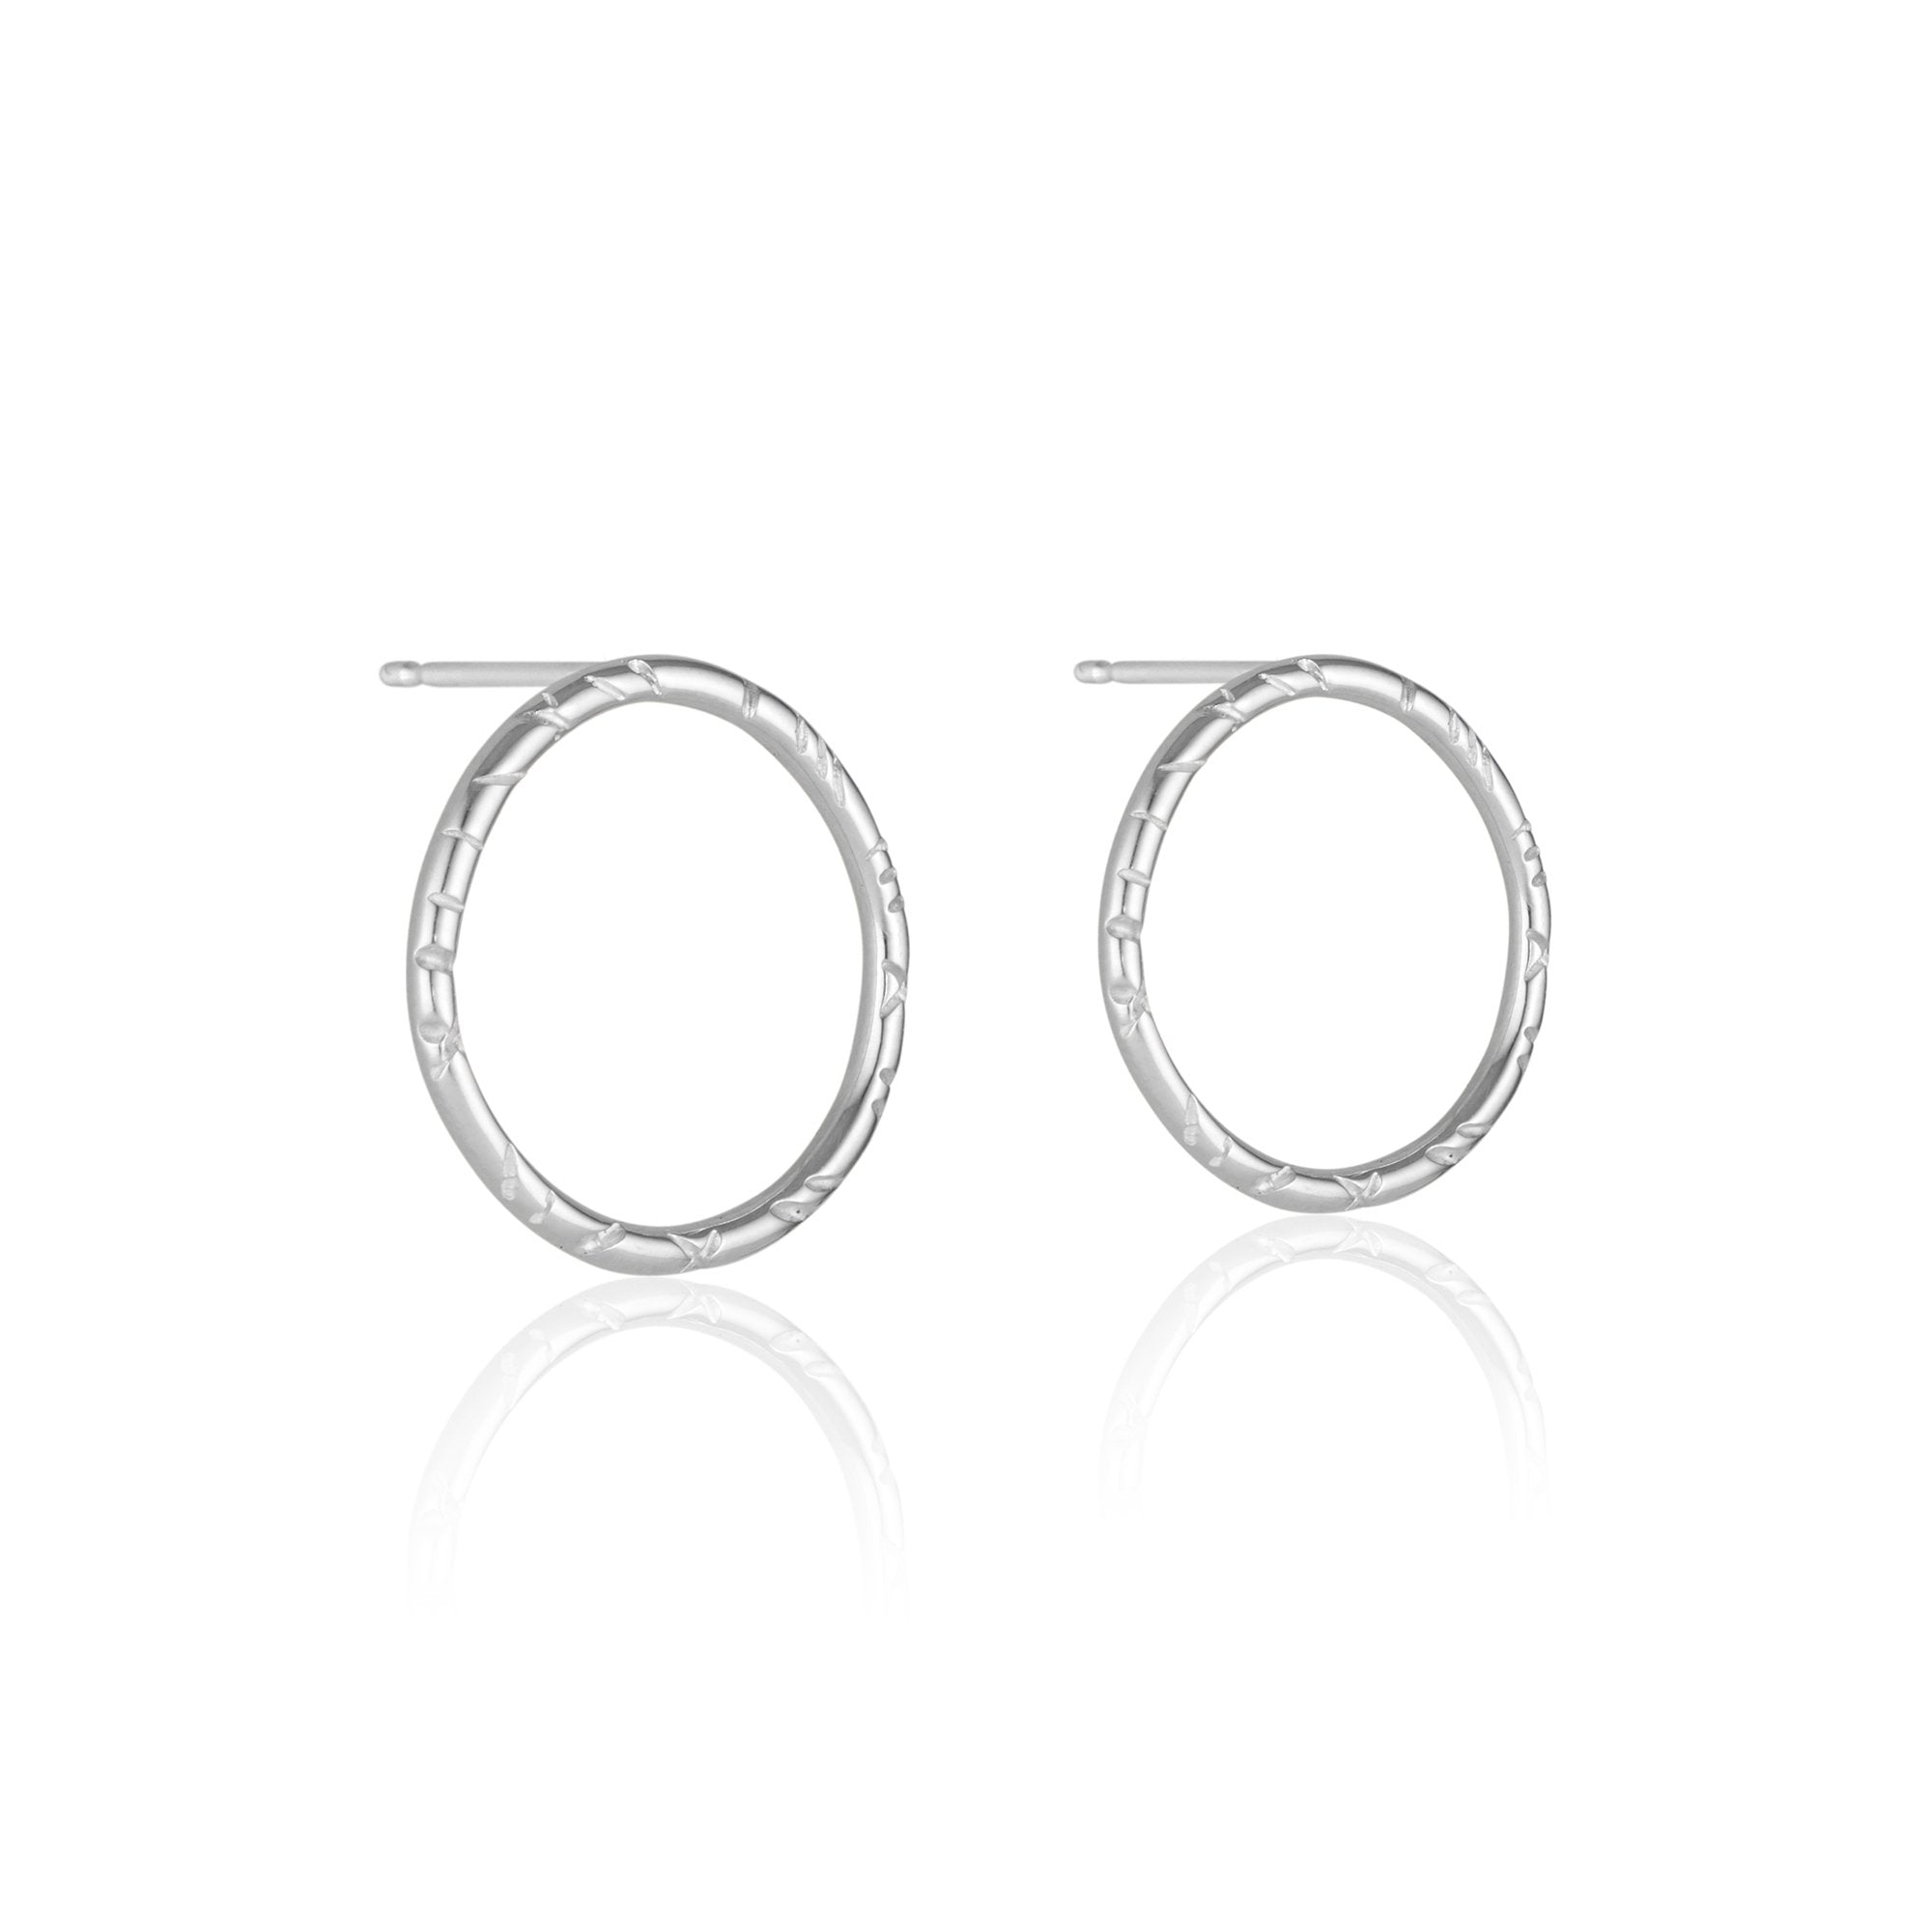 Chic, understated, and a touch of fun, the Madeline Earrings are an incredibly comfortable pair of sterling silver studs that can be dressed up or down for truly any occasion. They are the perfect pair to wear to the office, or out on the town!